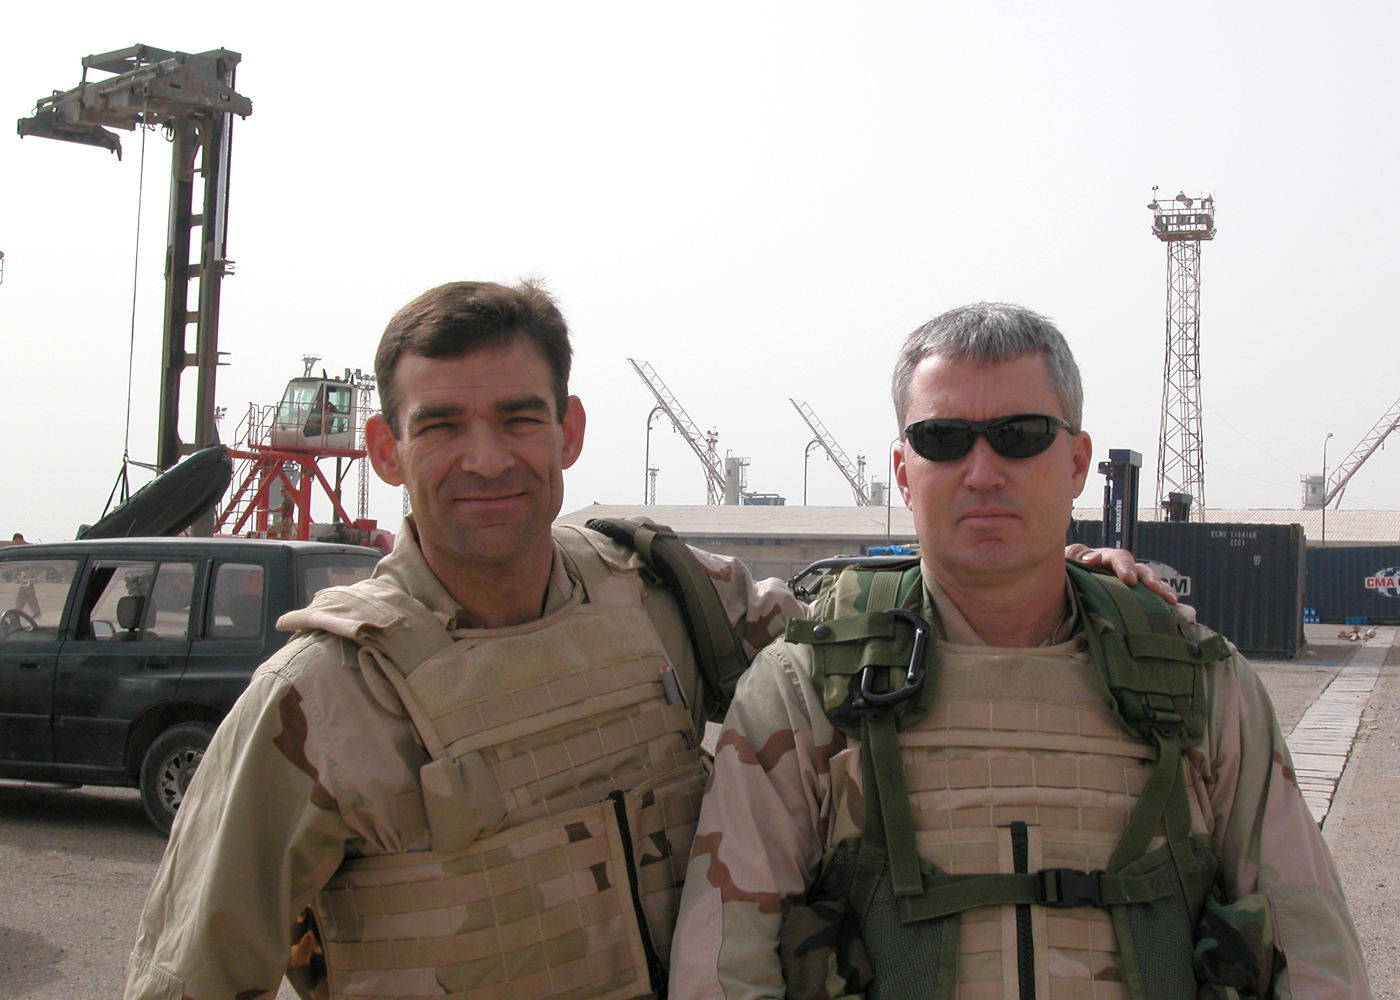 Anthony Rodgers and Kurt nelson leading mine clearance operations in Umm qasr